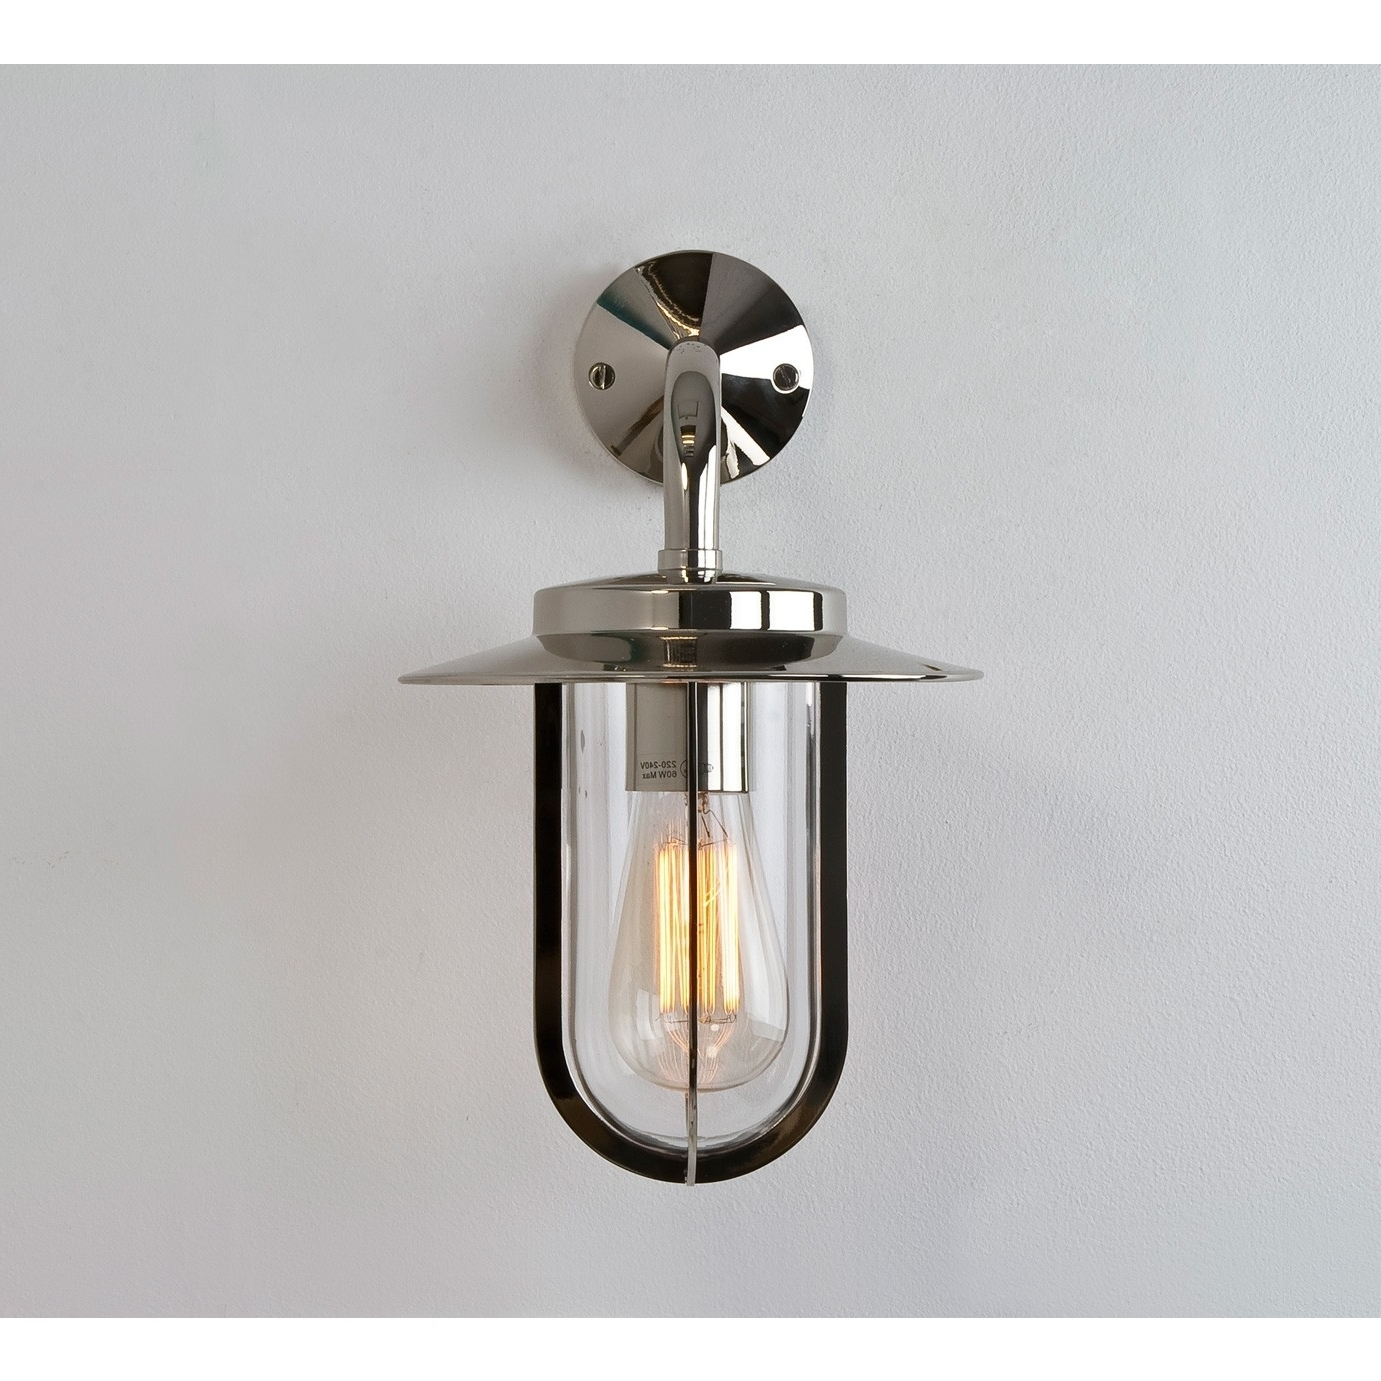 Preferred Polished Nickel Outdoor Wall Sconce • Wall Sconces For Nickel Polished Outdoor Wall Lighting (View 7 of 20)